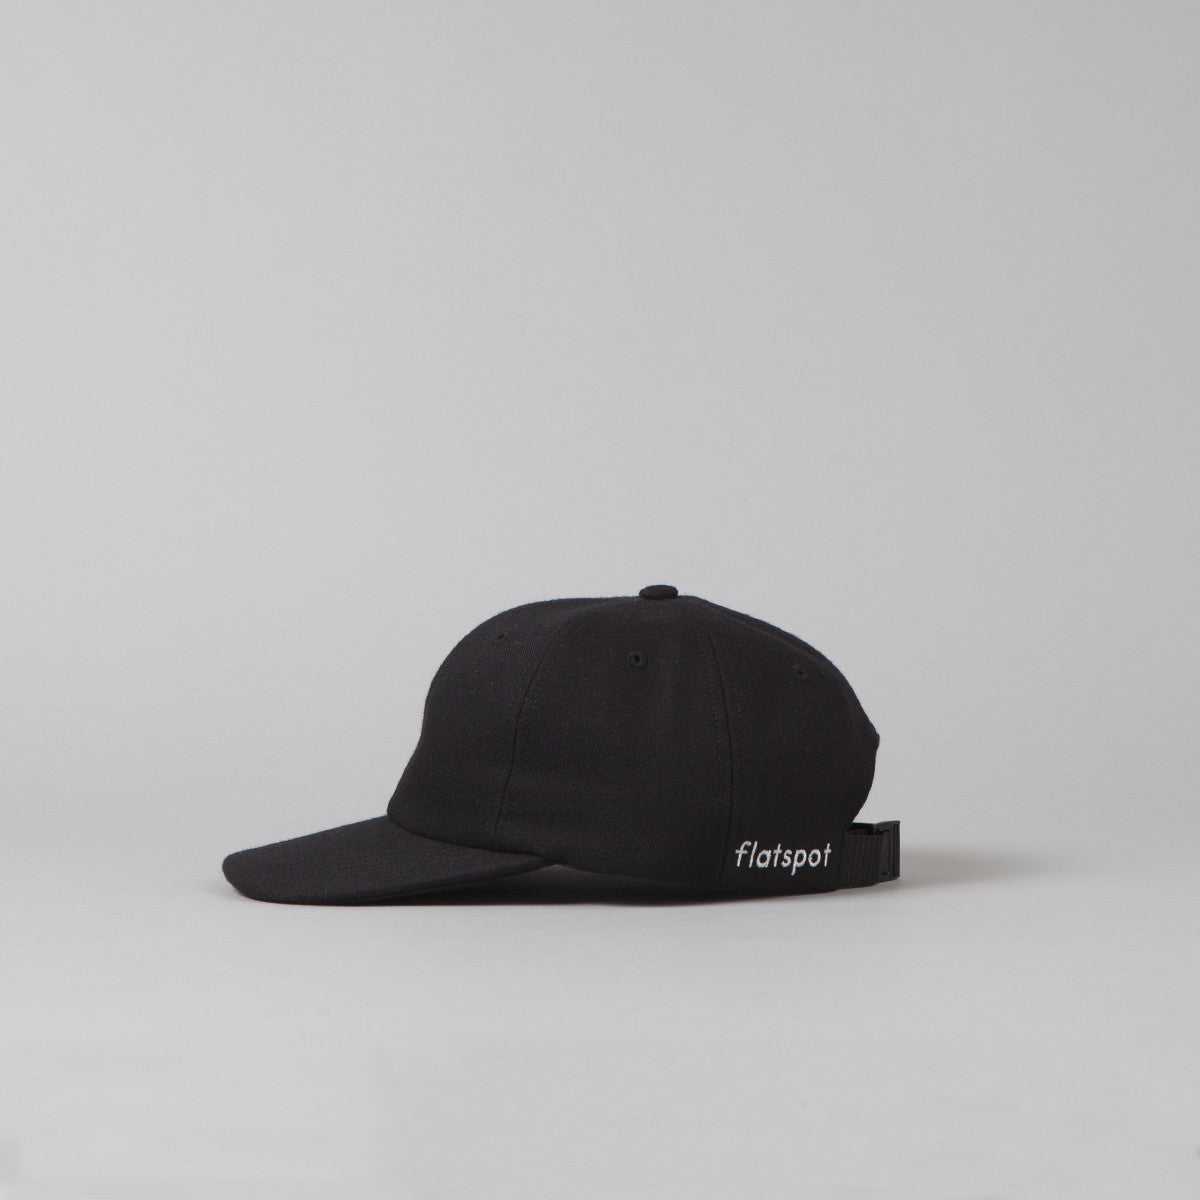 Flatspot Wool Polo Cap - Black